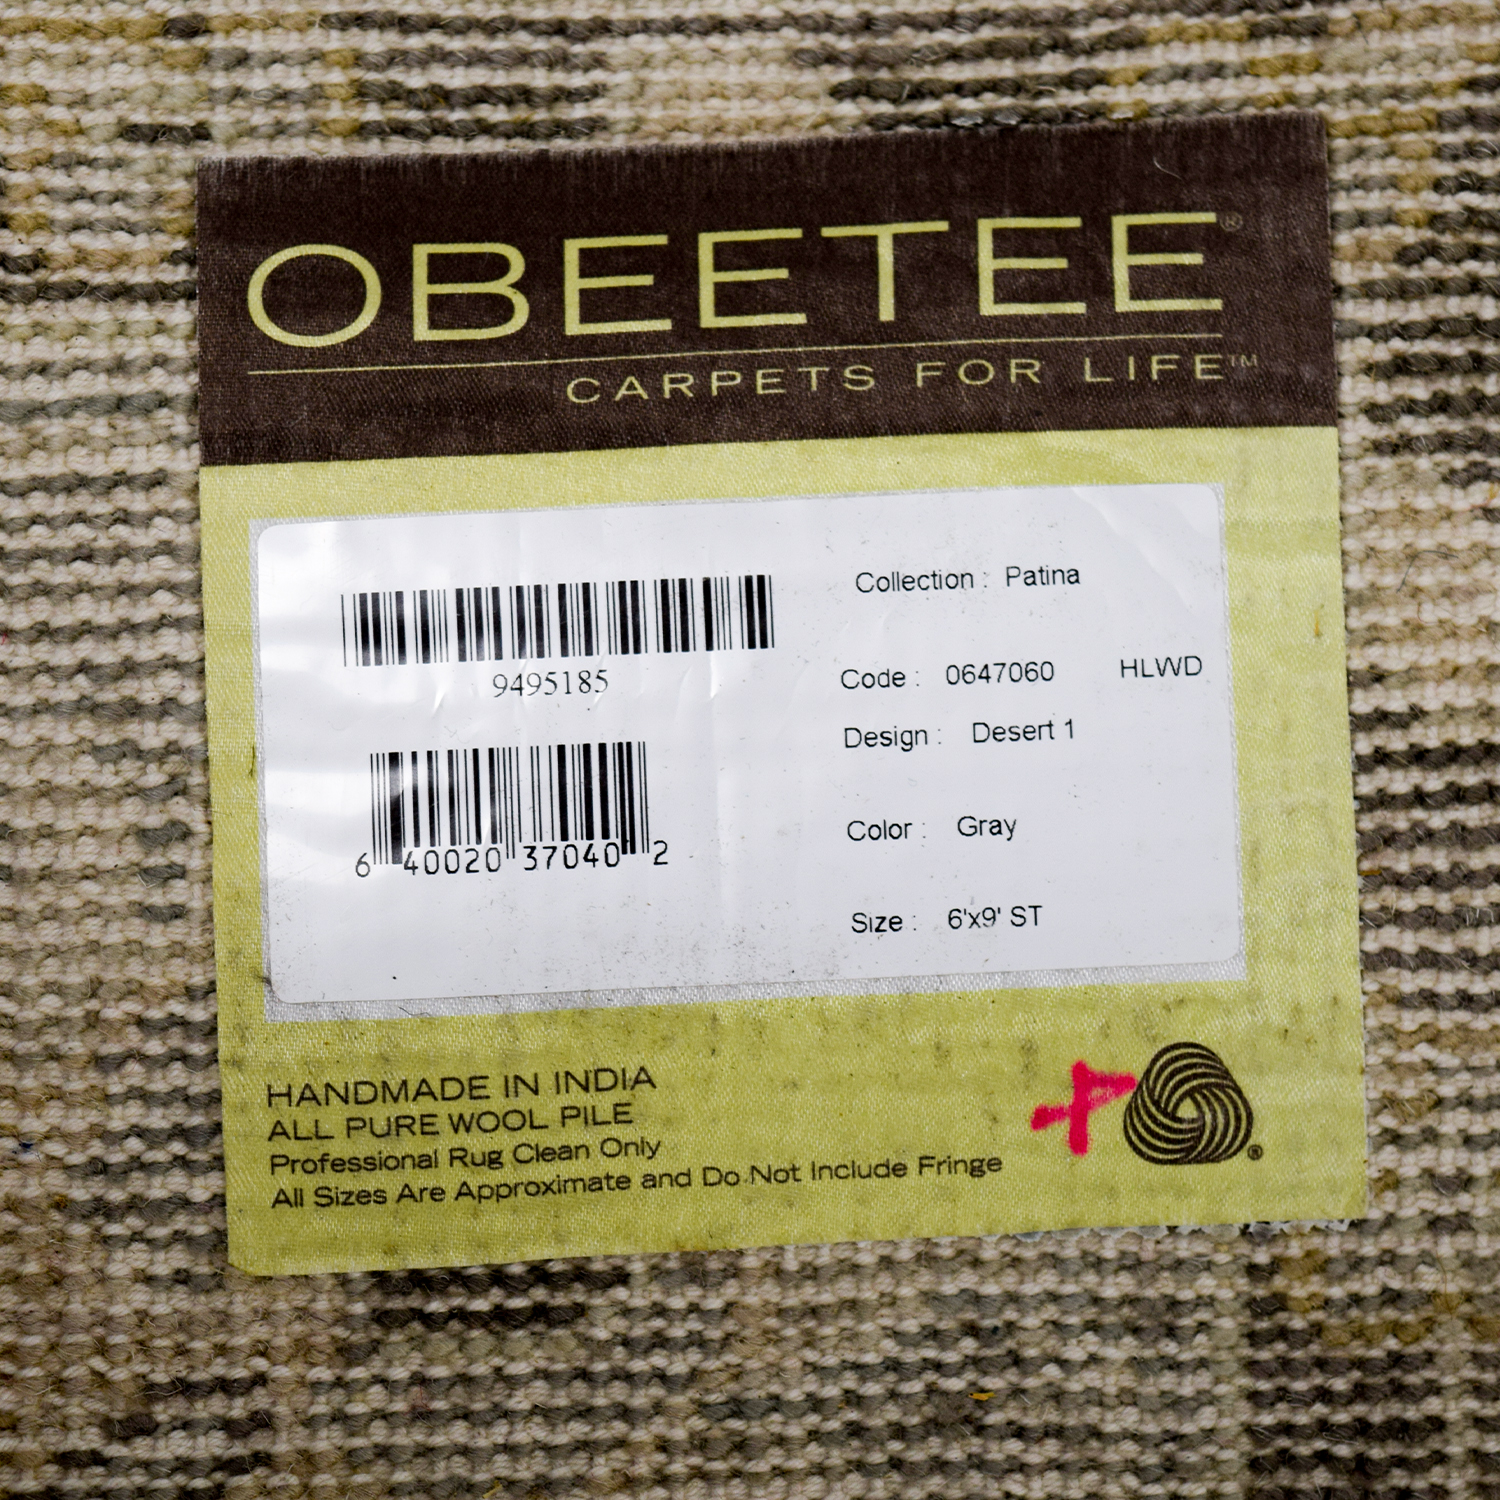 Obeetee Obeetee Hand Knotted Gray Wool Rug price